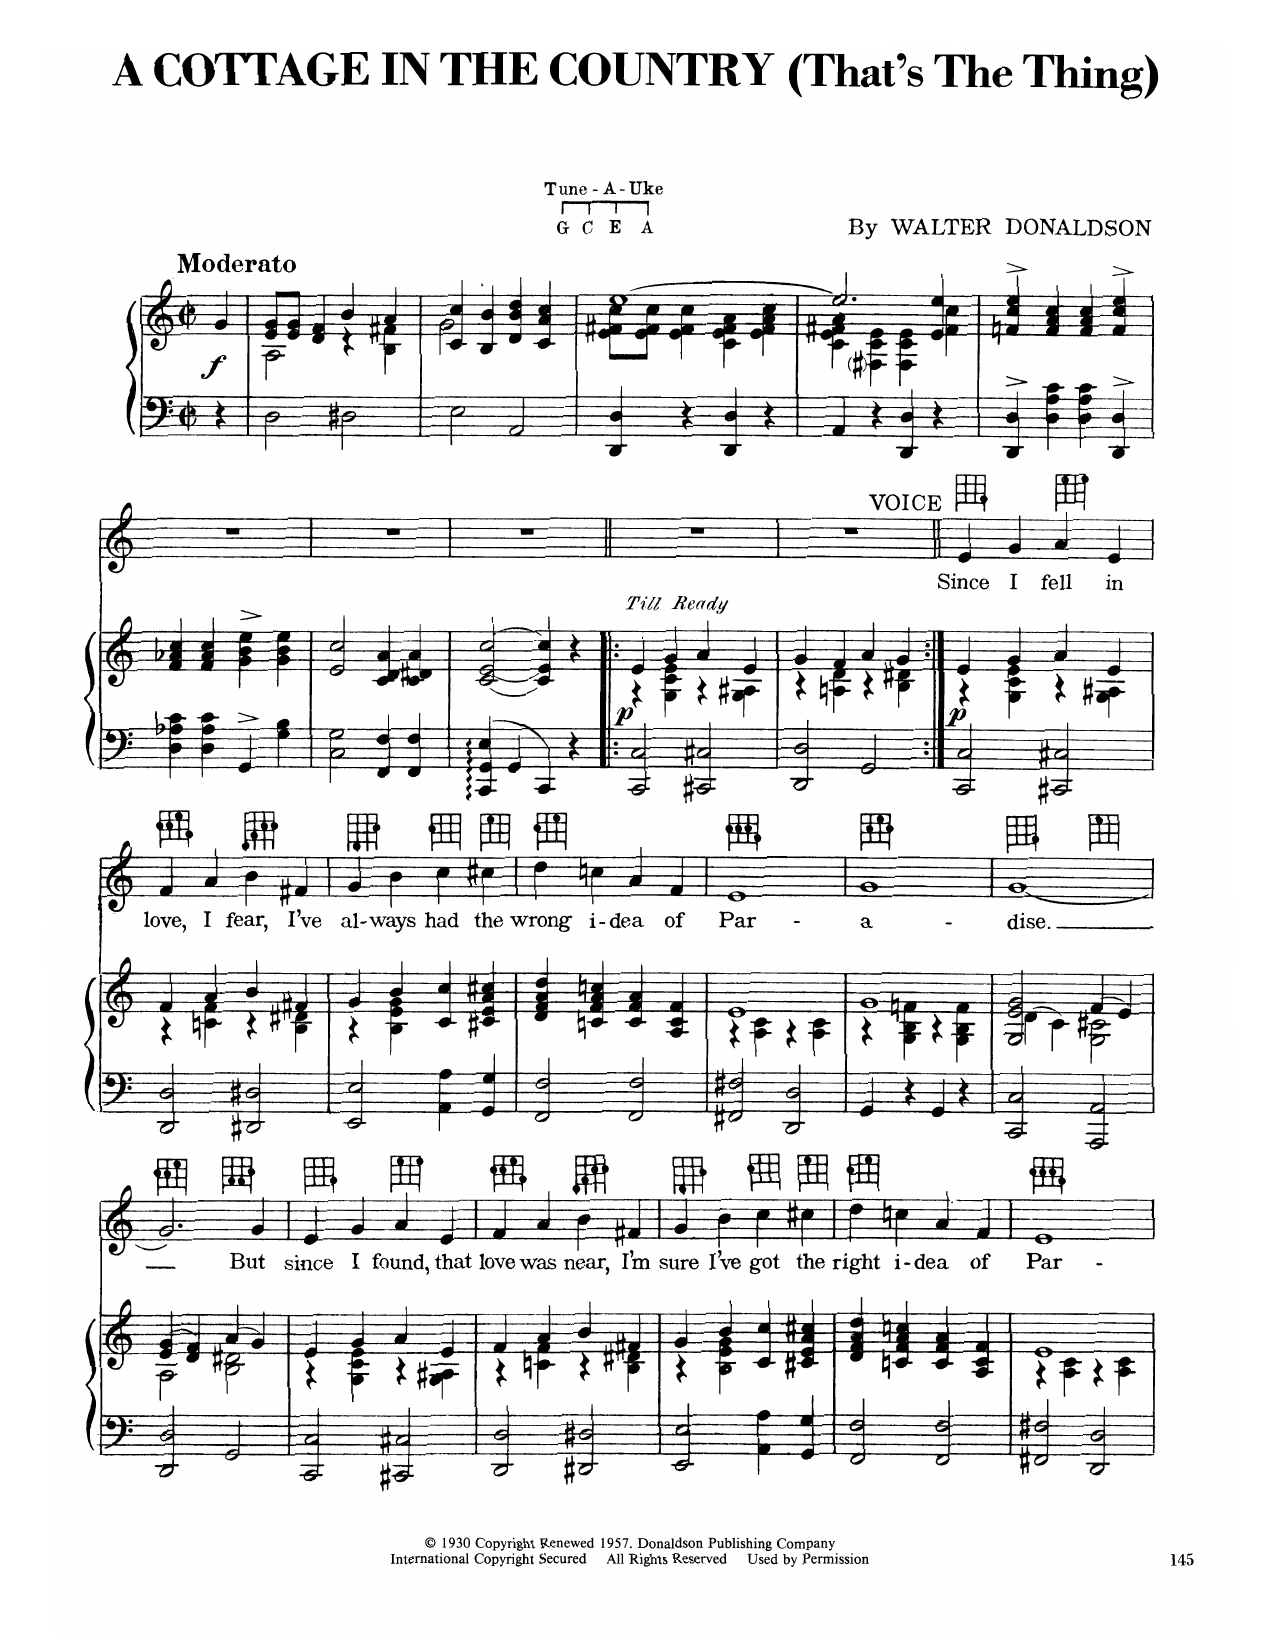 A Cottage In The Country (That's The Thing) (Piano, Vocal & Guitar (Right-Hand Melody))